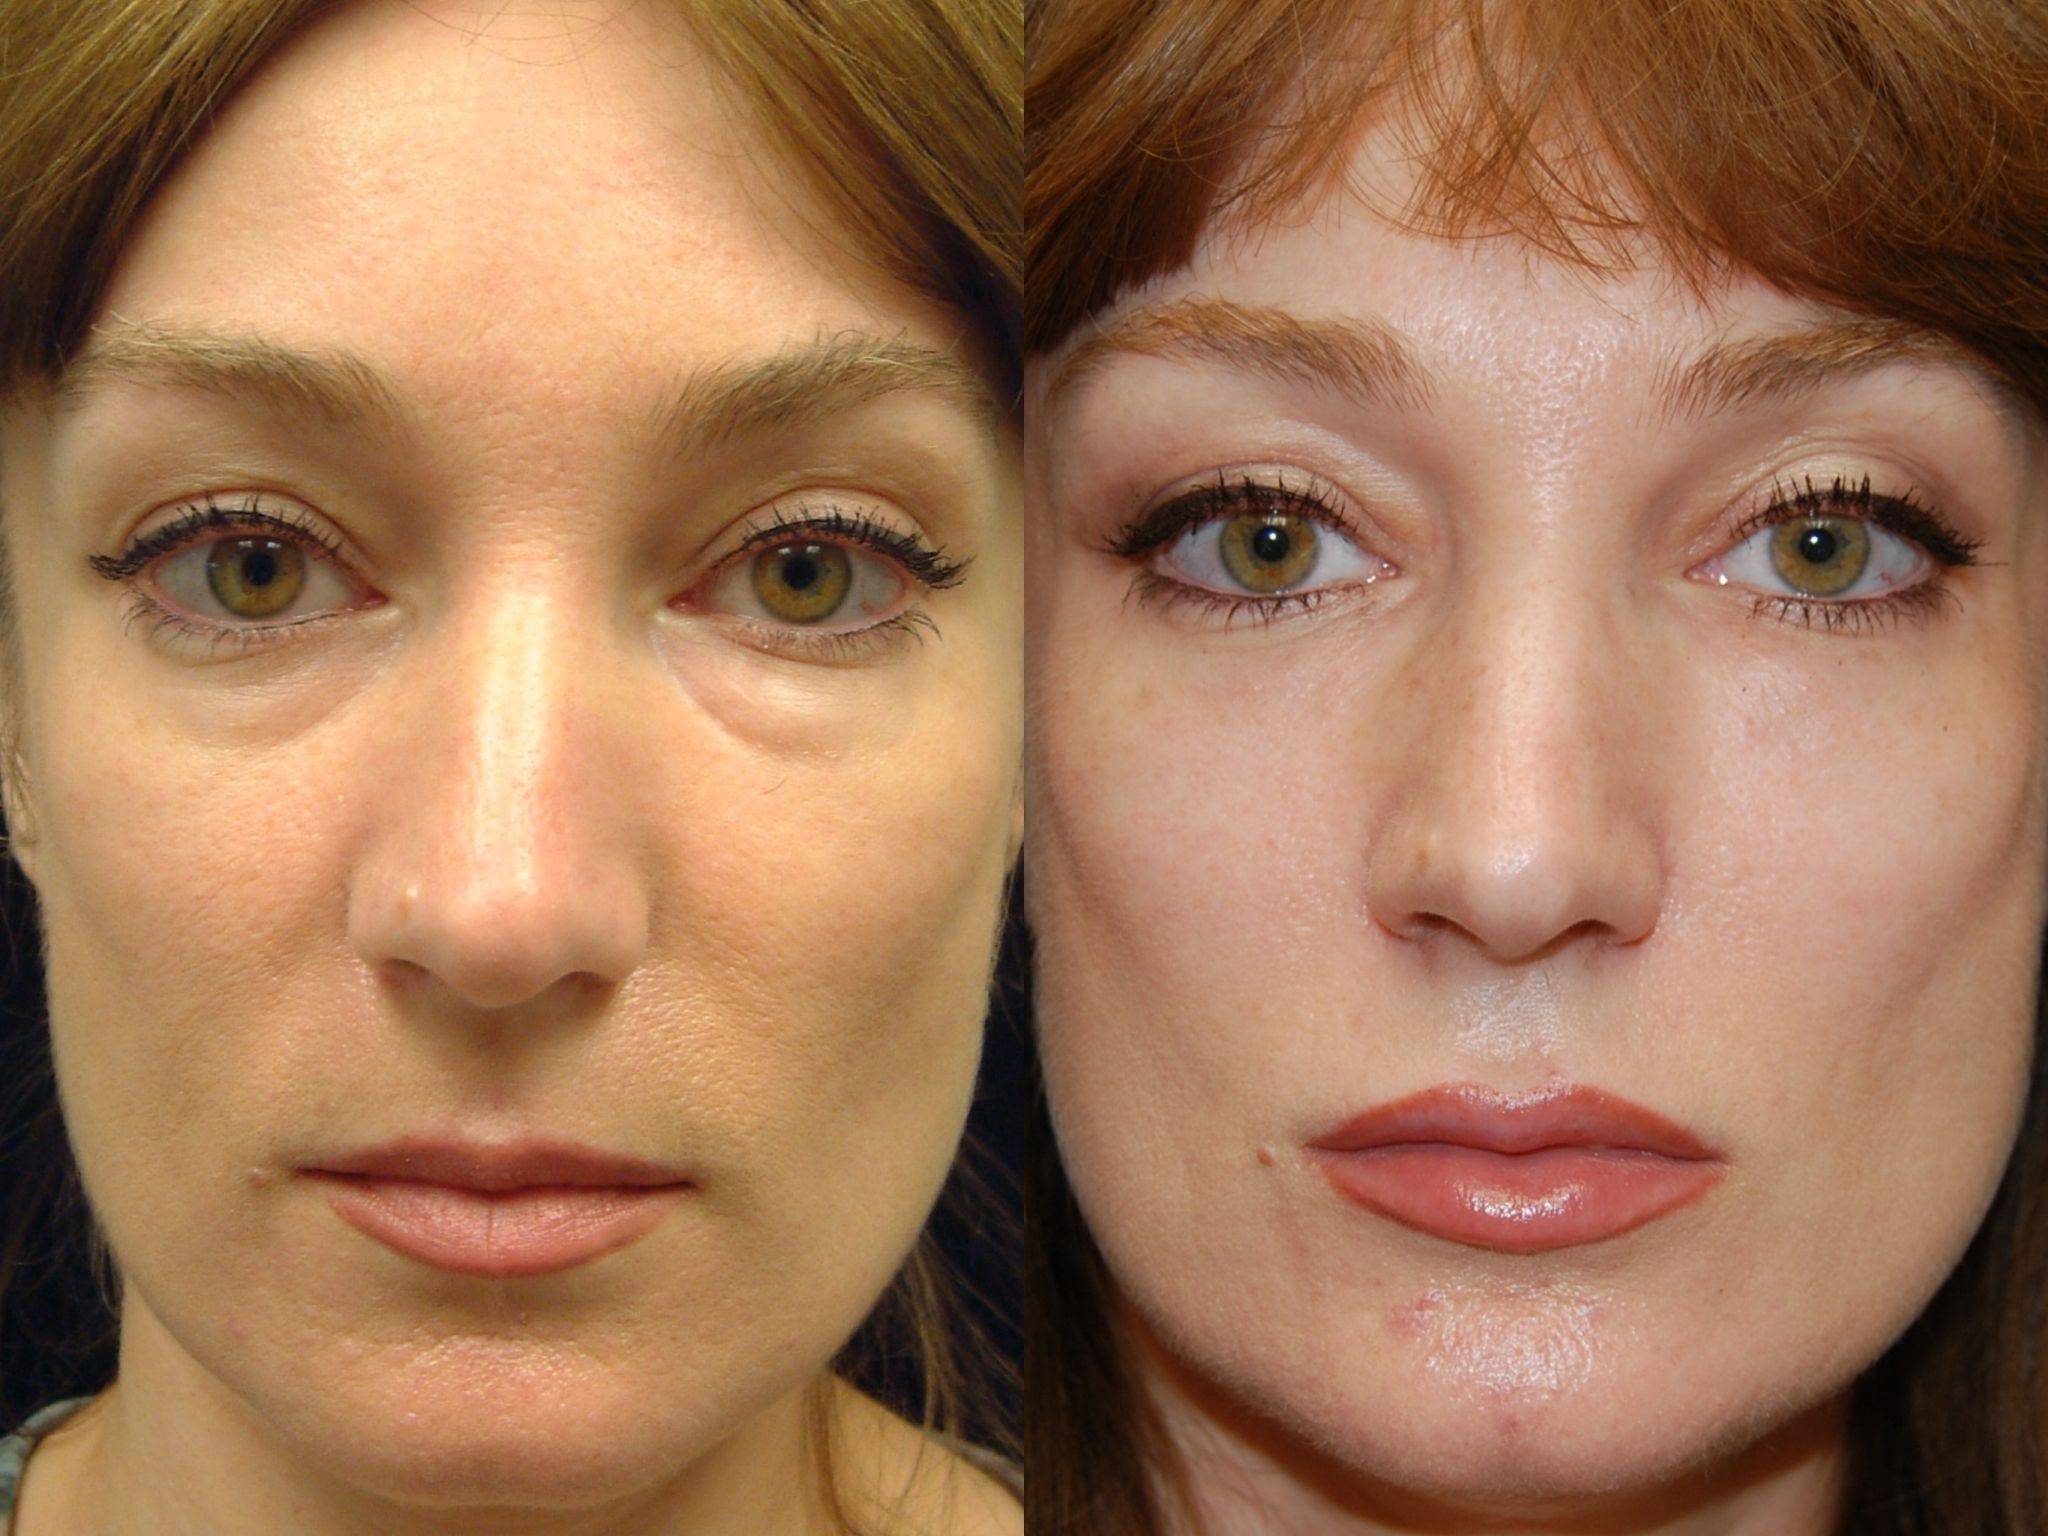 Before and after tear trough fillers | Cosmetic/Plastic